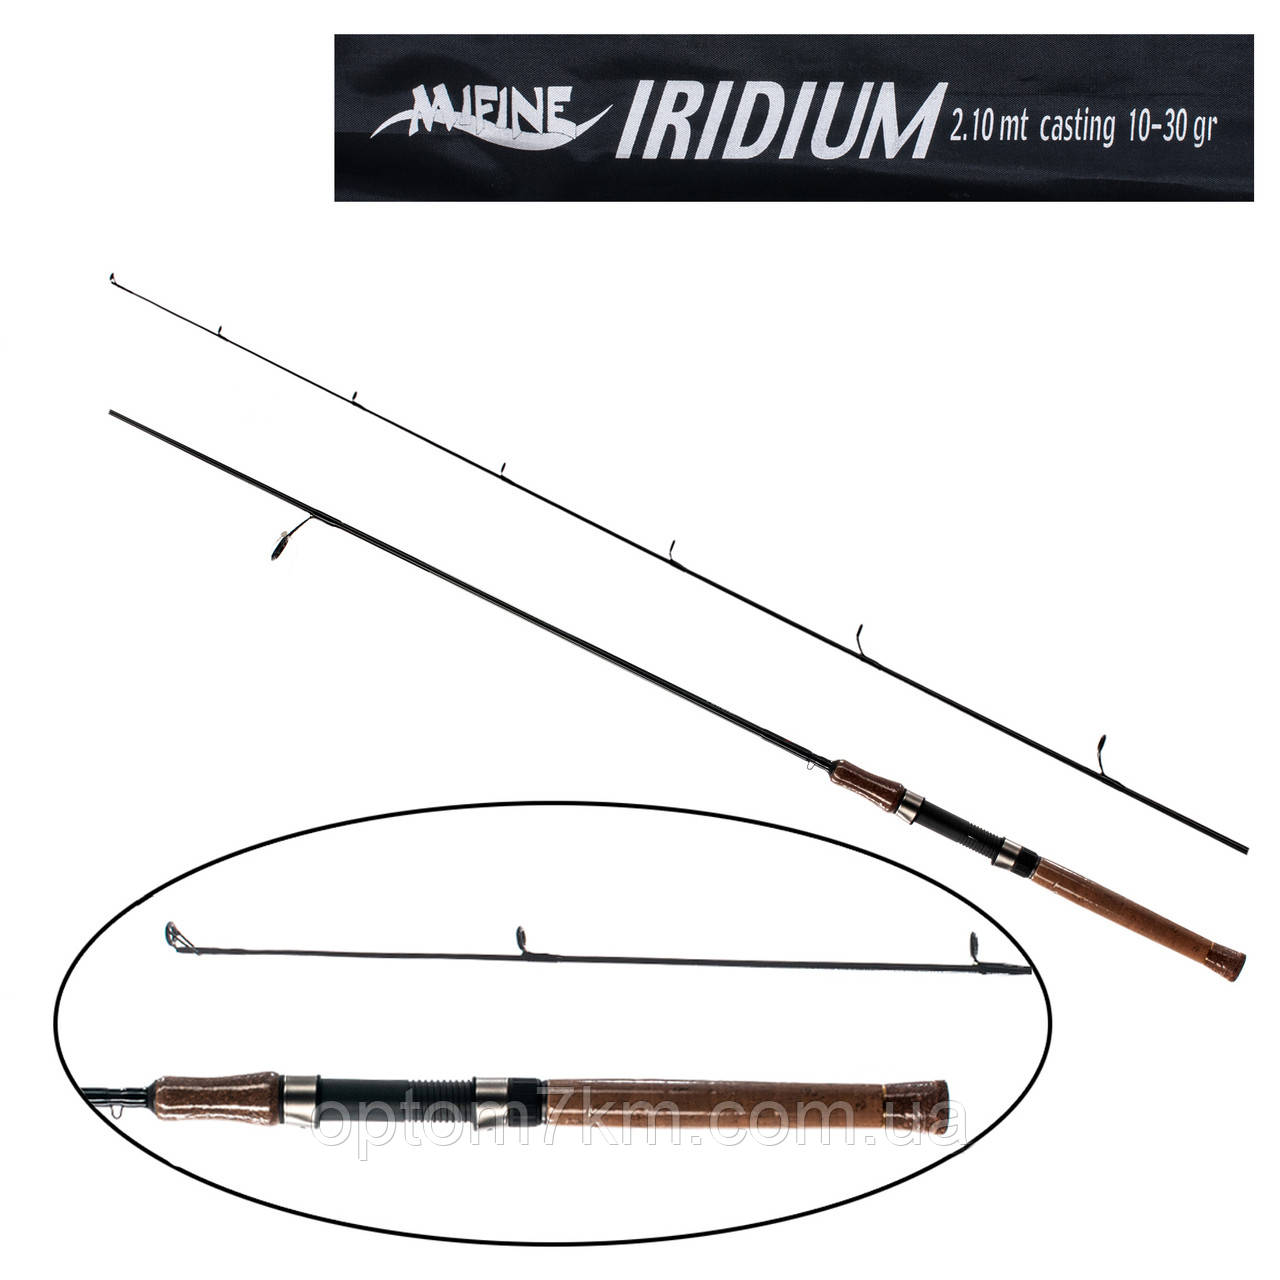 Спиннинг Mifine Iridium 2,7m, тест 10-30g